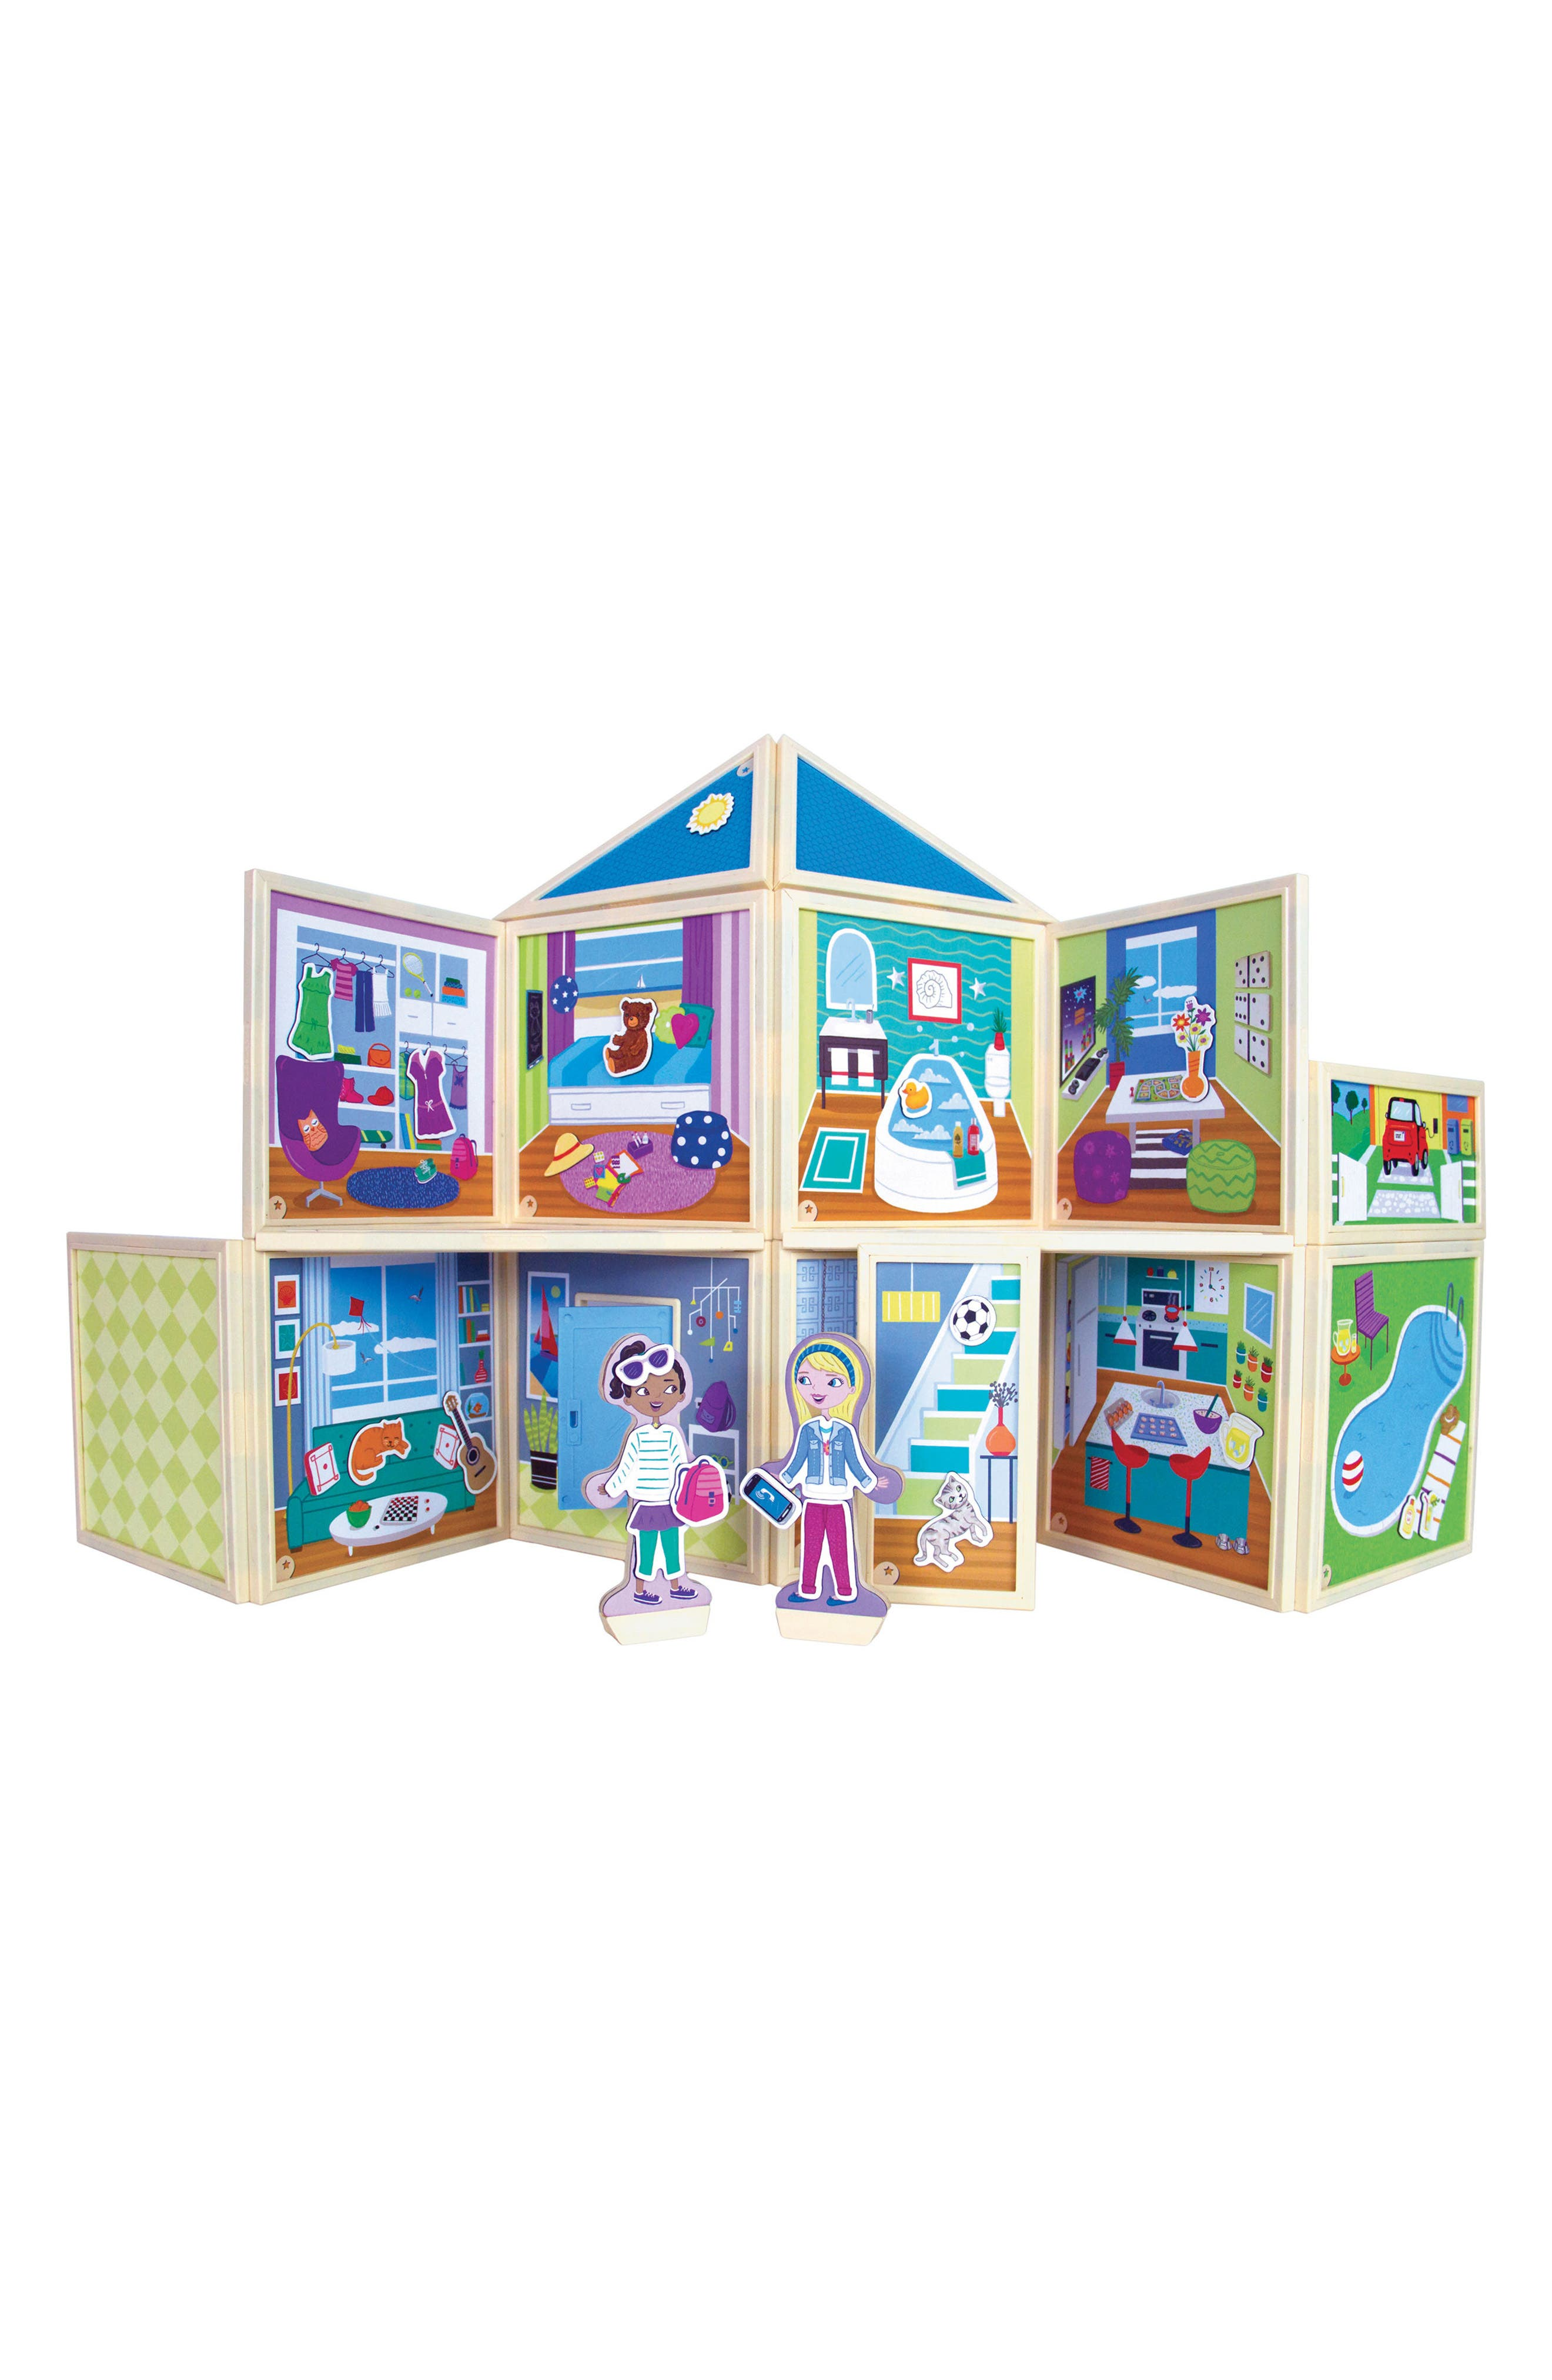 Alternate Image 1 Selected - Build and Imagine Malia's House 61-Piece Magnetic Dollhouse